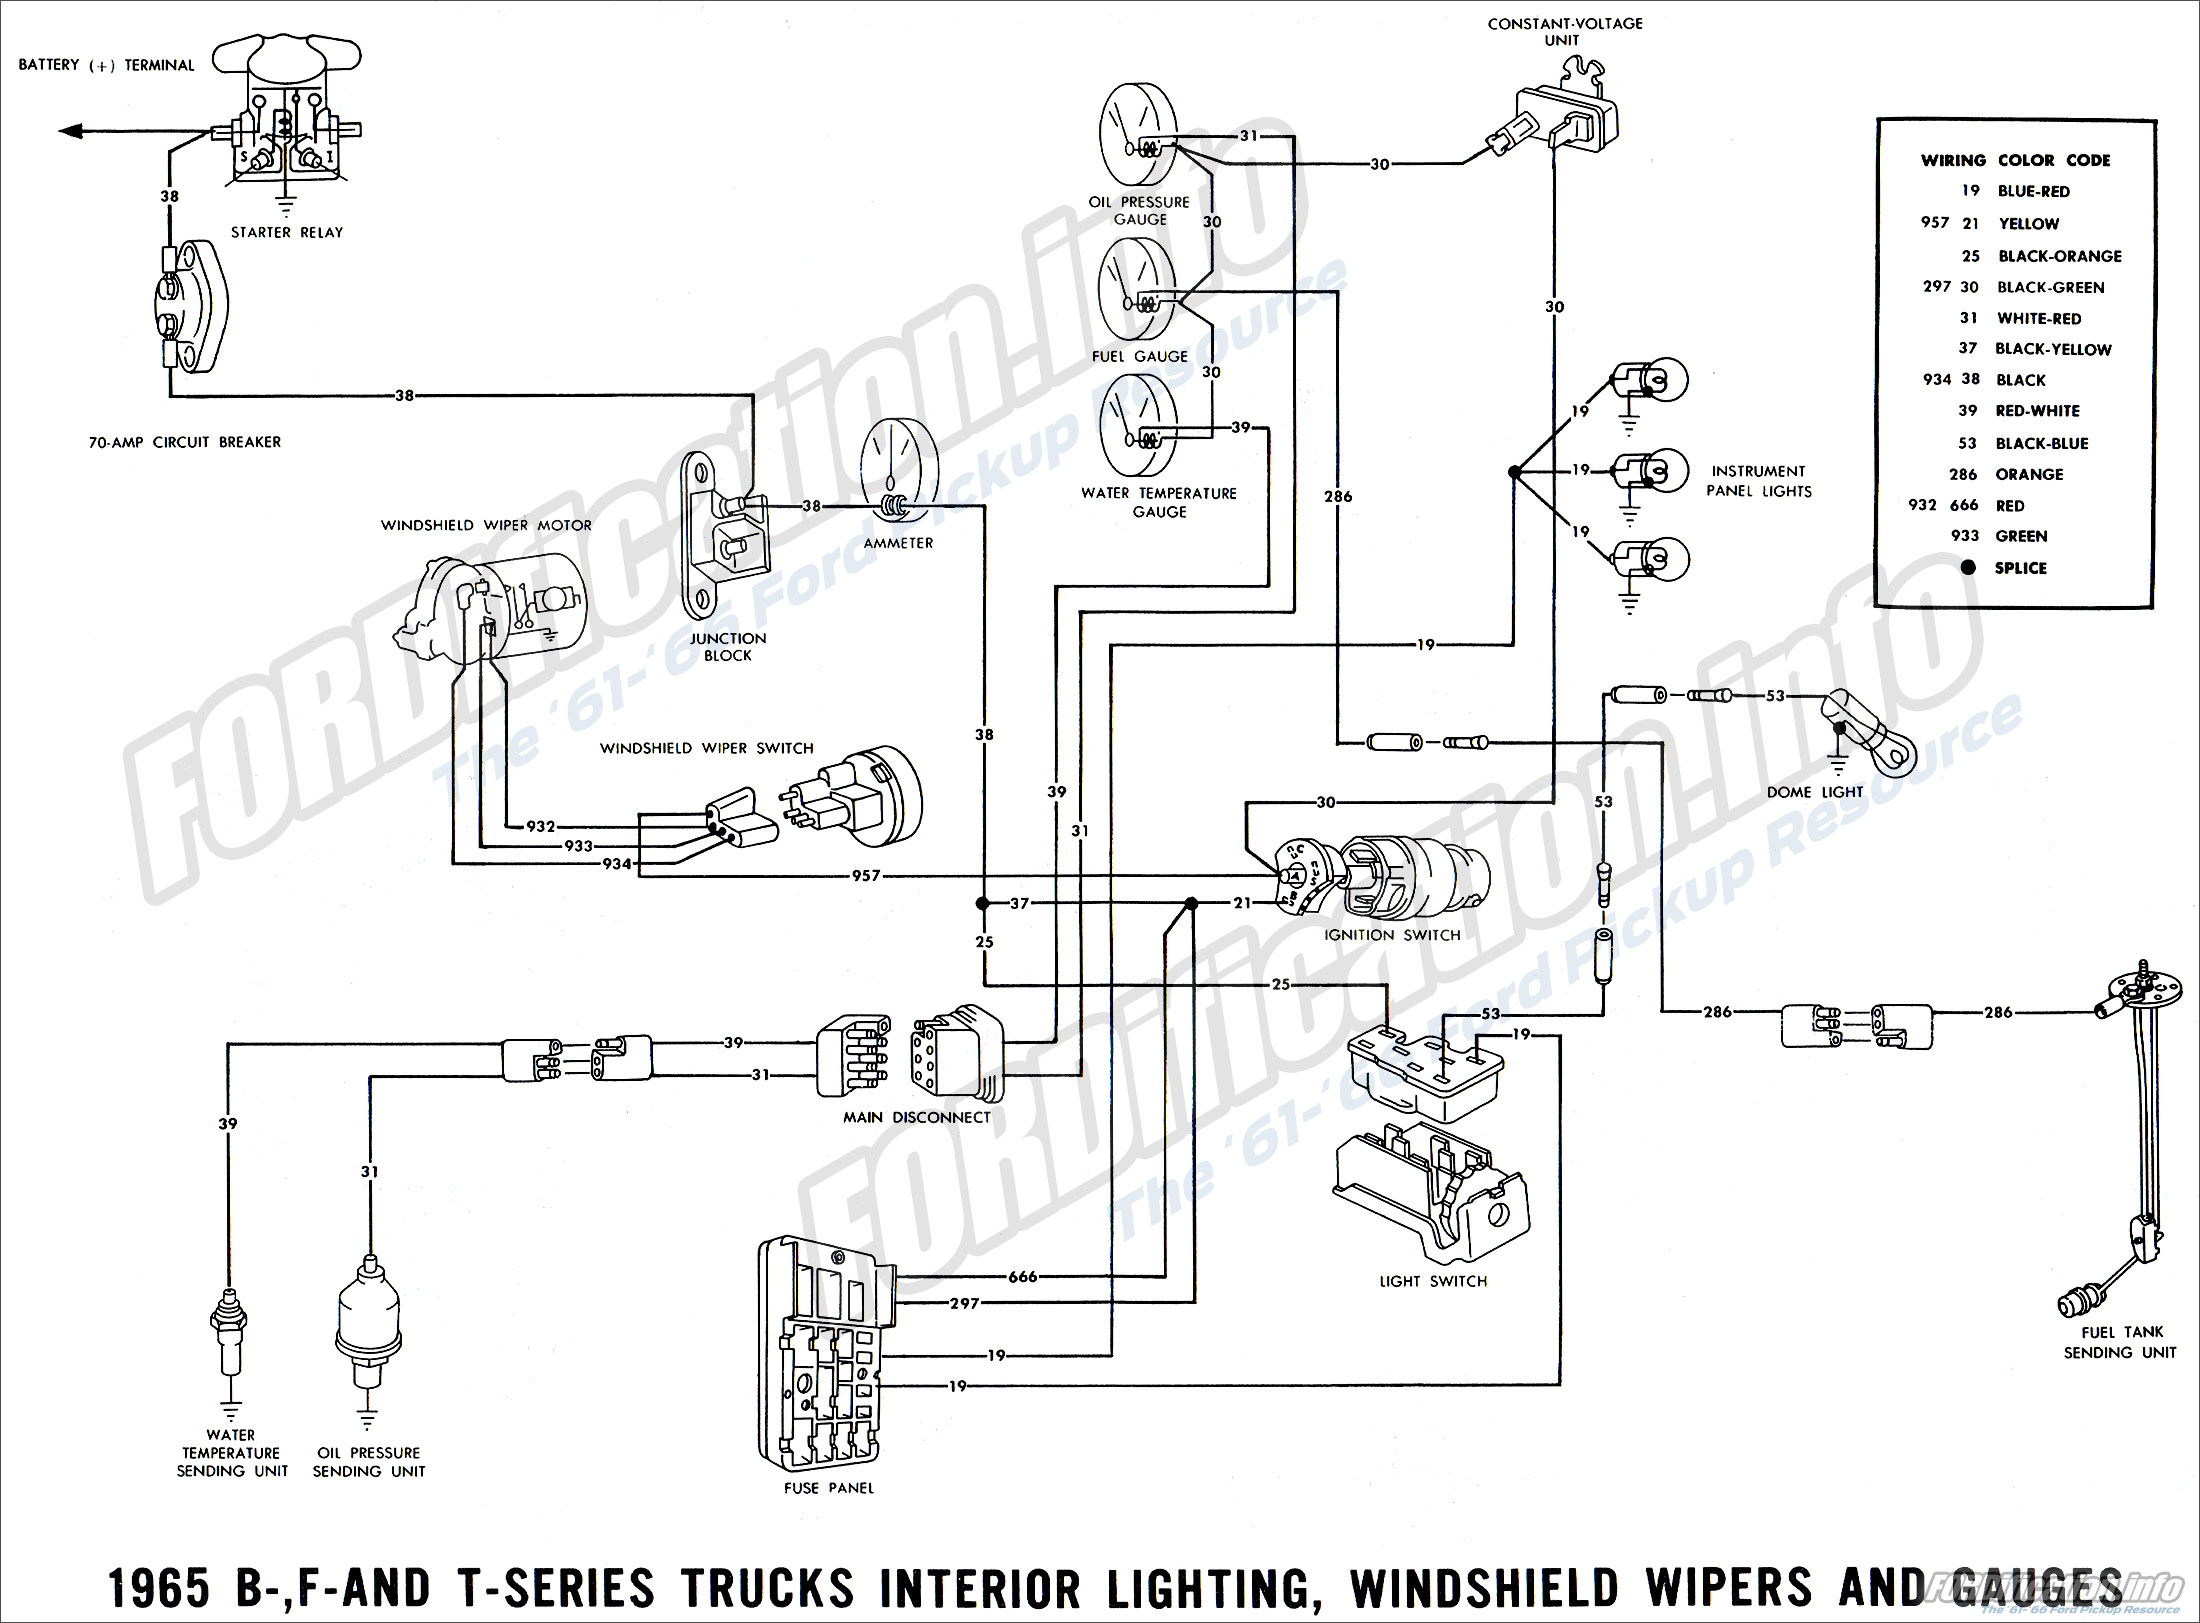 Ford F100 Wiring Archive Of Automotive Diagram 95 F150 Wiper Motor 1965 Truck Diagrams Fordification Info The 61 66 Rh 1955